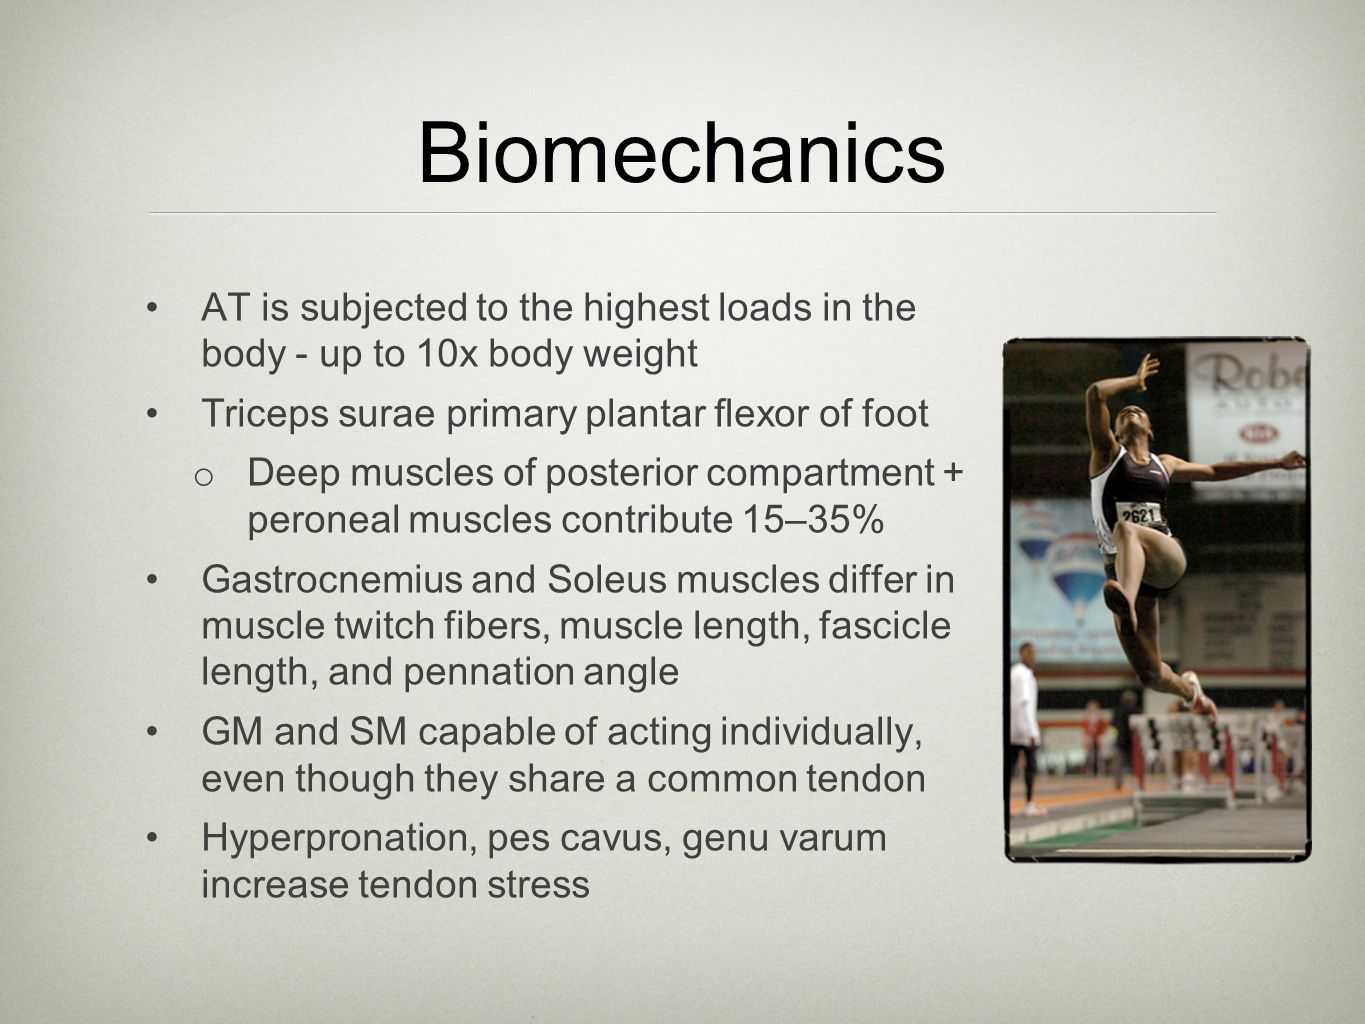 Biomechanics AT is subjected to the highest loads in the body - up to 10x body weight. Triceps surae primary plantar flexor of foot.